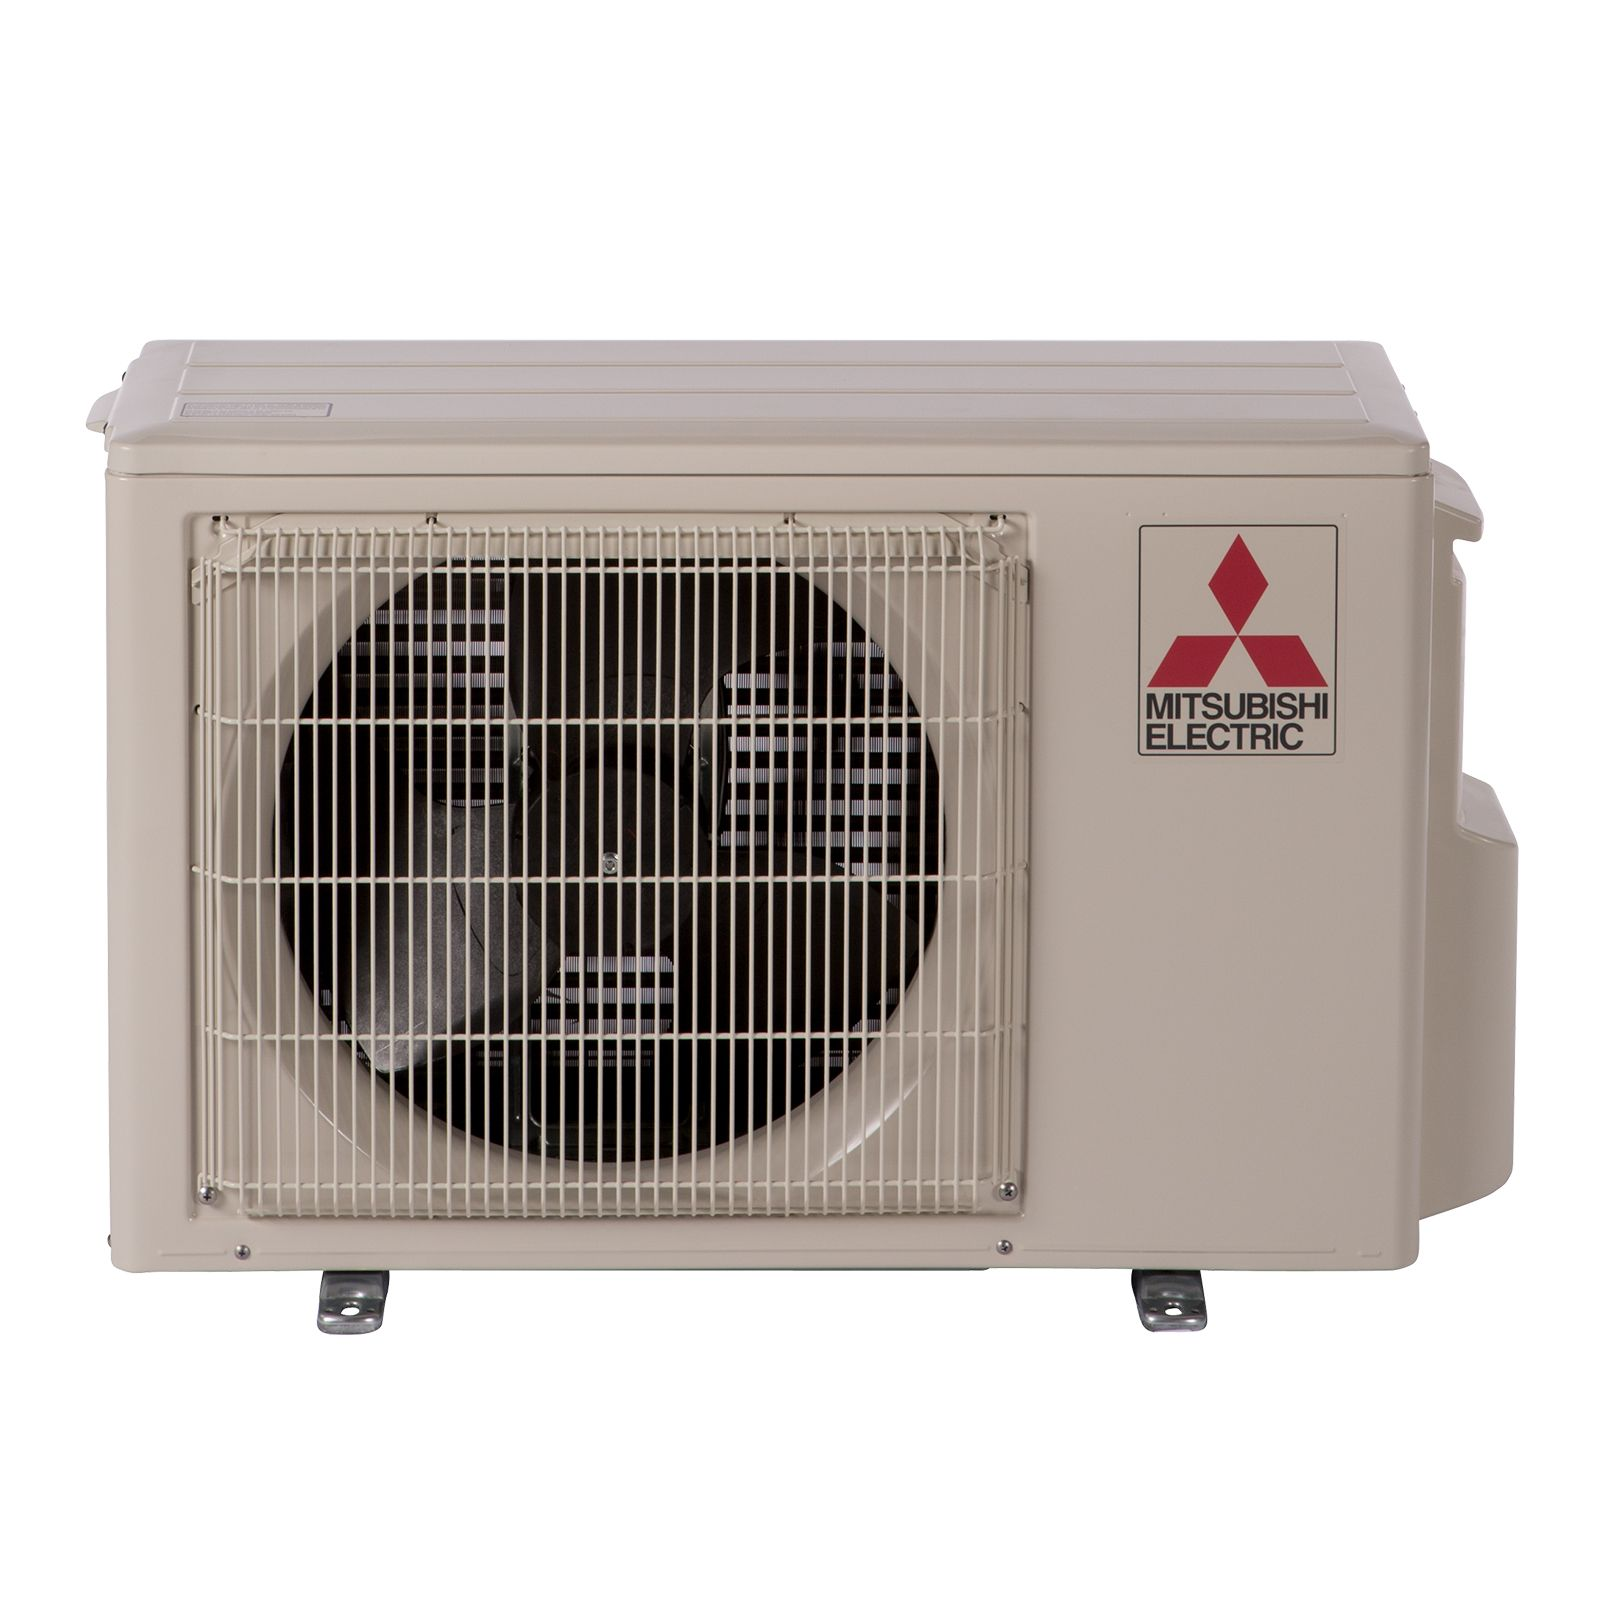 outdoor heating and cost indoor cons prices pros cooling minisplit ductless mini mitsubishi systems split